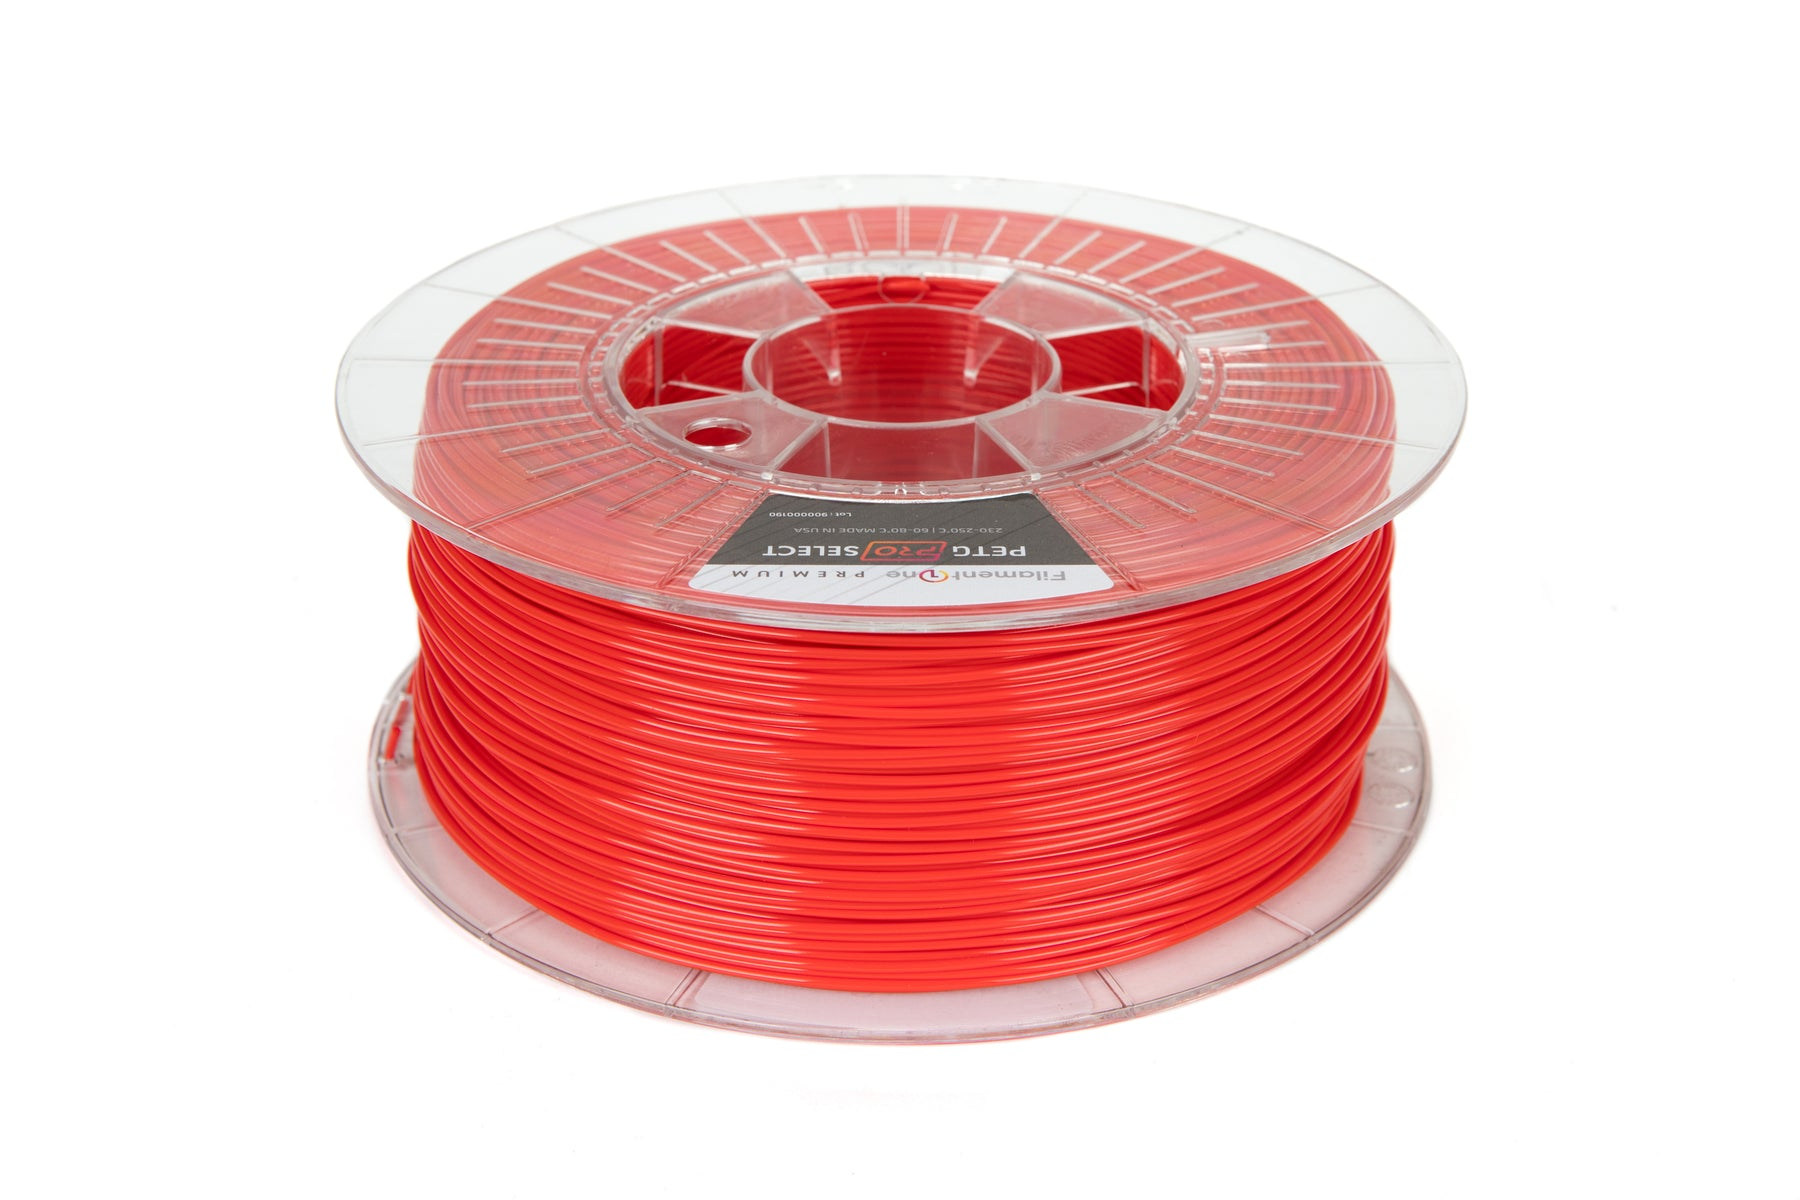 FilamentOne PETG PRO SELECT Traffic Red - 1.75mm (1KG) 3D Printer Filament